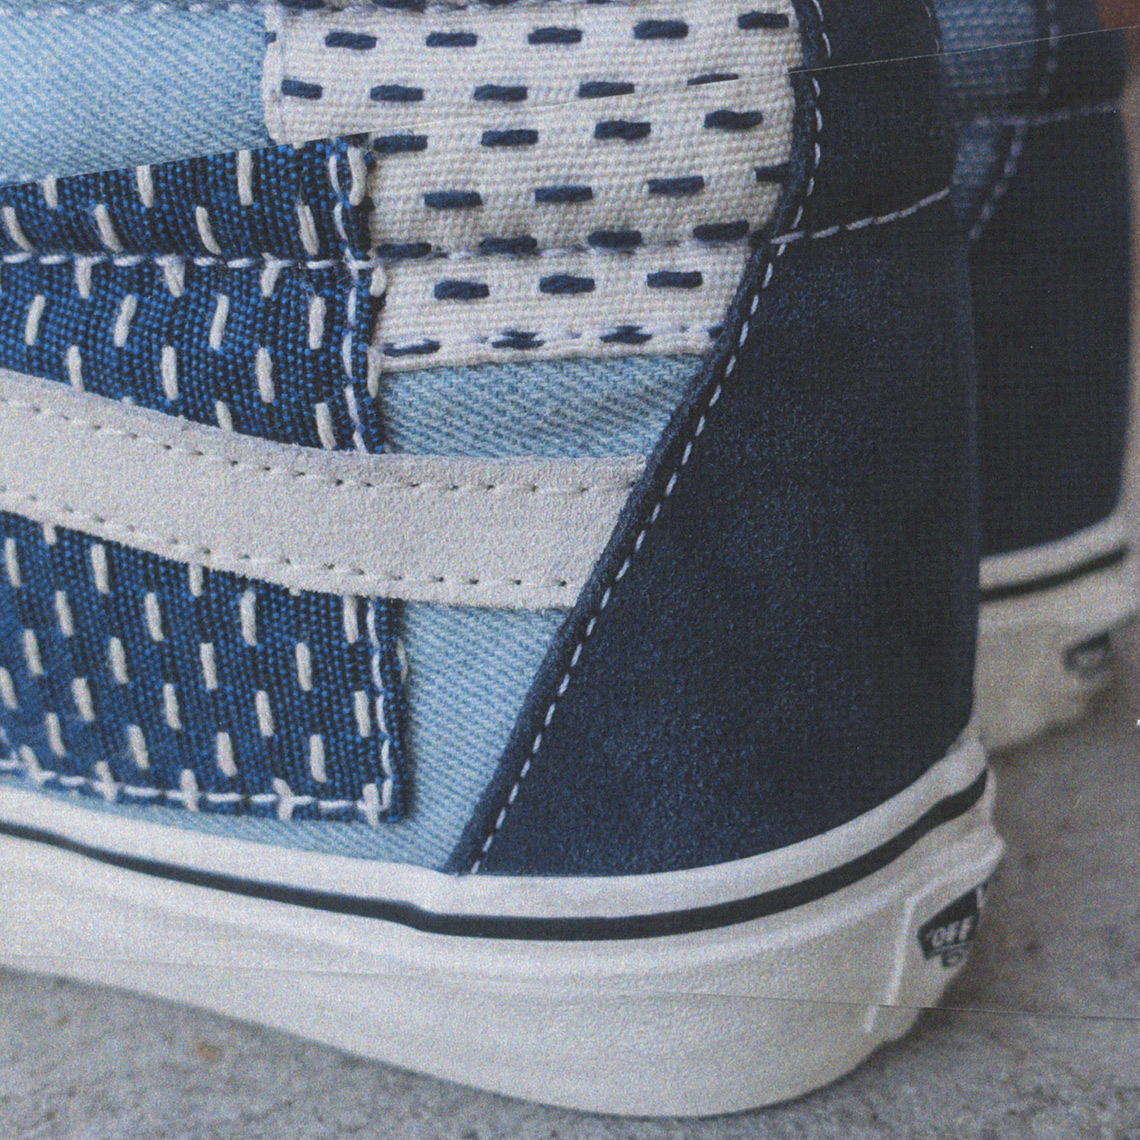 6b08e39515 All three Denim Patchwork Vans designs will arrive at select retailers as  well as Vans.com later this month.